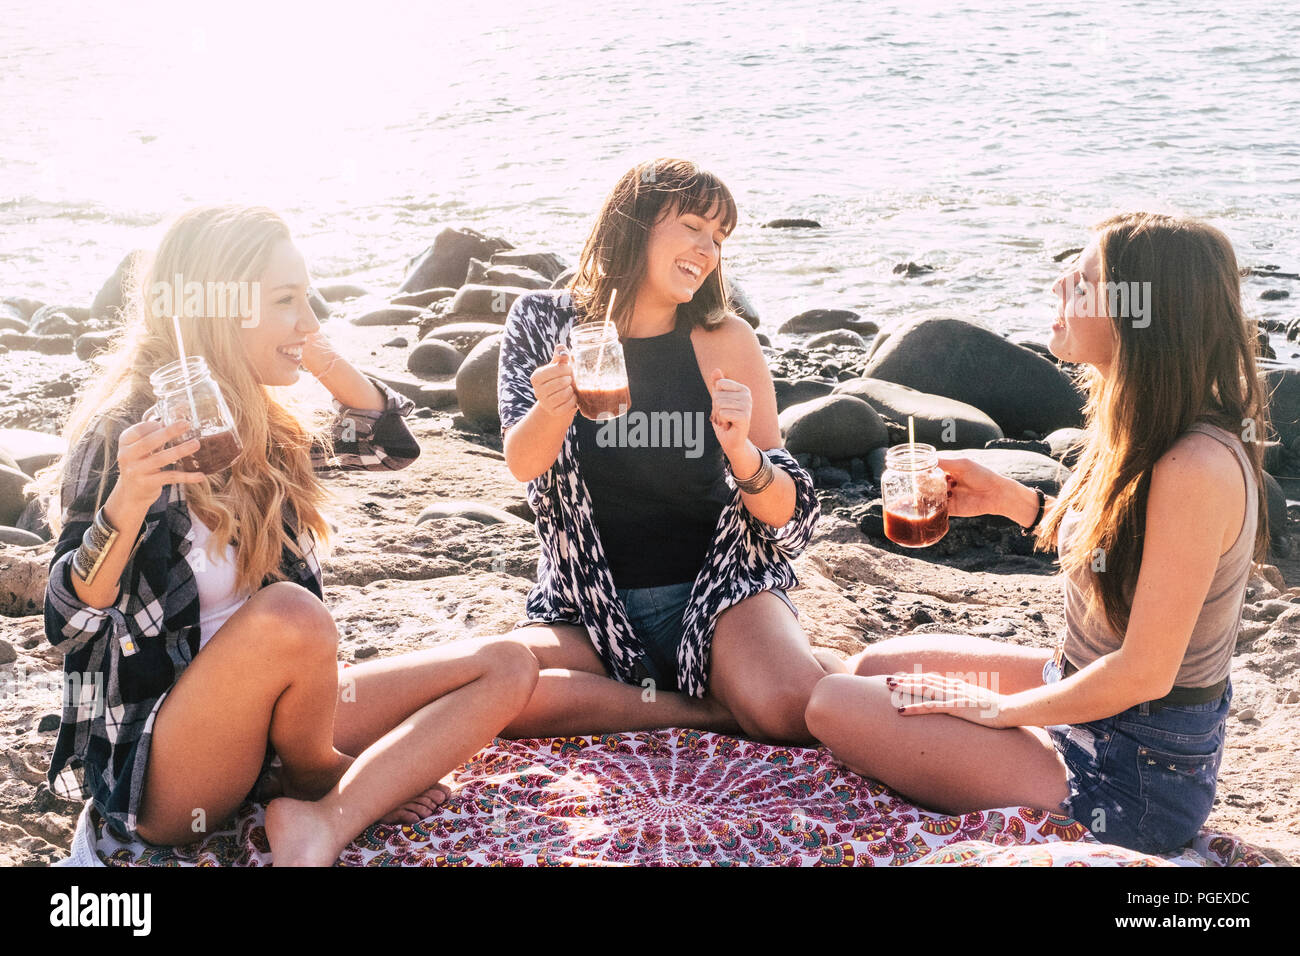 group of females friends sitting and enjoying the leisure activity during a summer vacation at the beach near the ocean. smiles and cheerful people ha - Stock Image